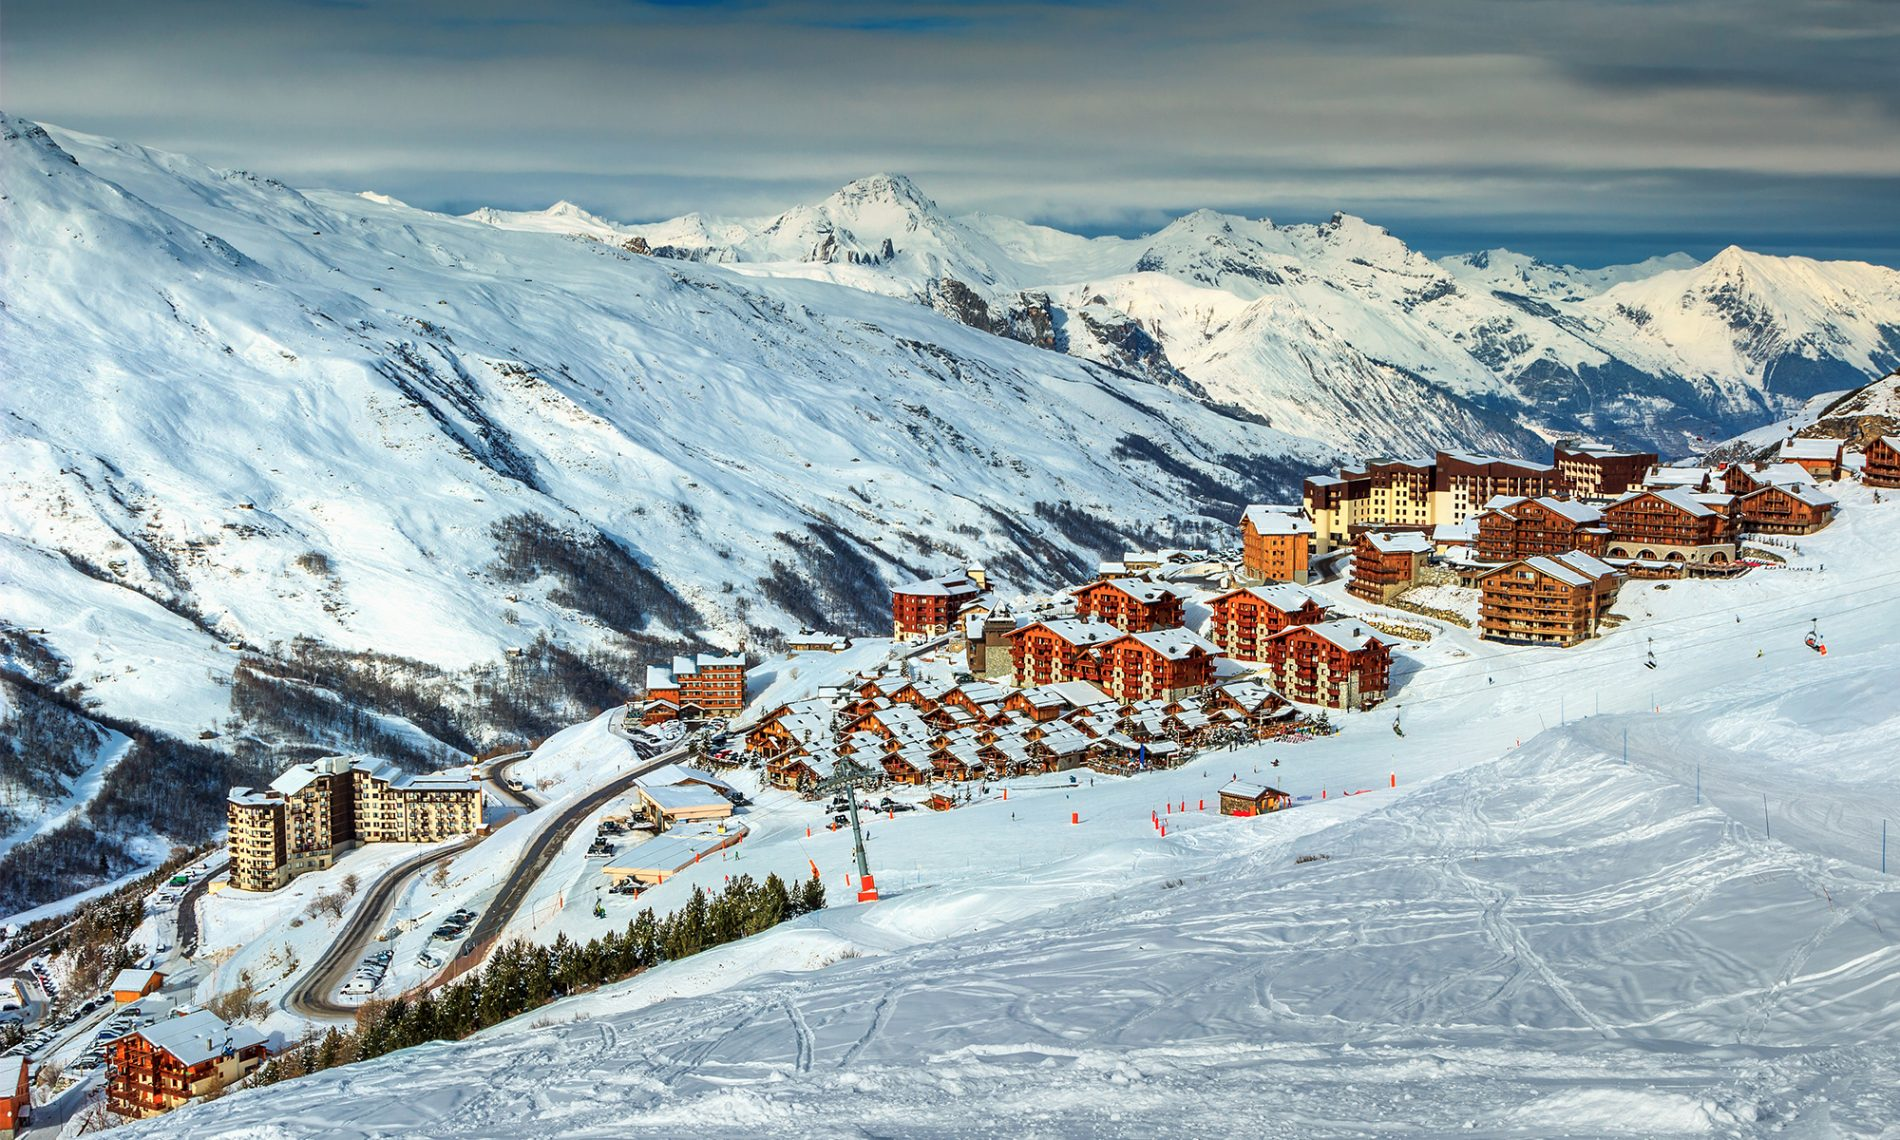 Les 3 Vallées in France. What Will Happen to the English Consumers of the French Mountains after March 29?